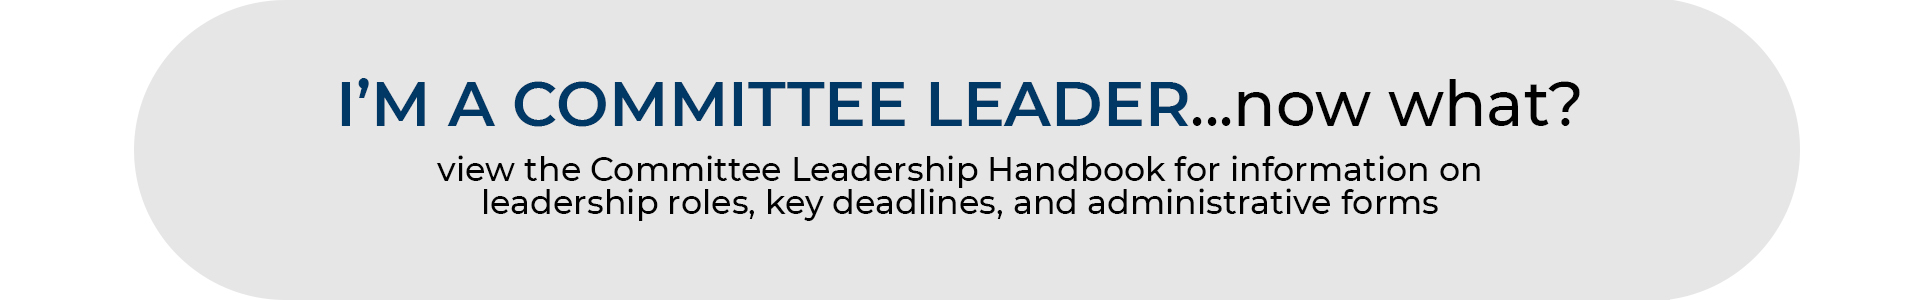 View the Committee Leadership Handbook for helpful information on roles and deadlines.